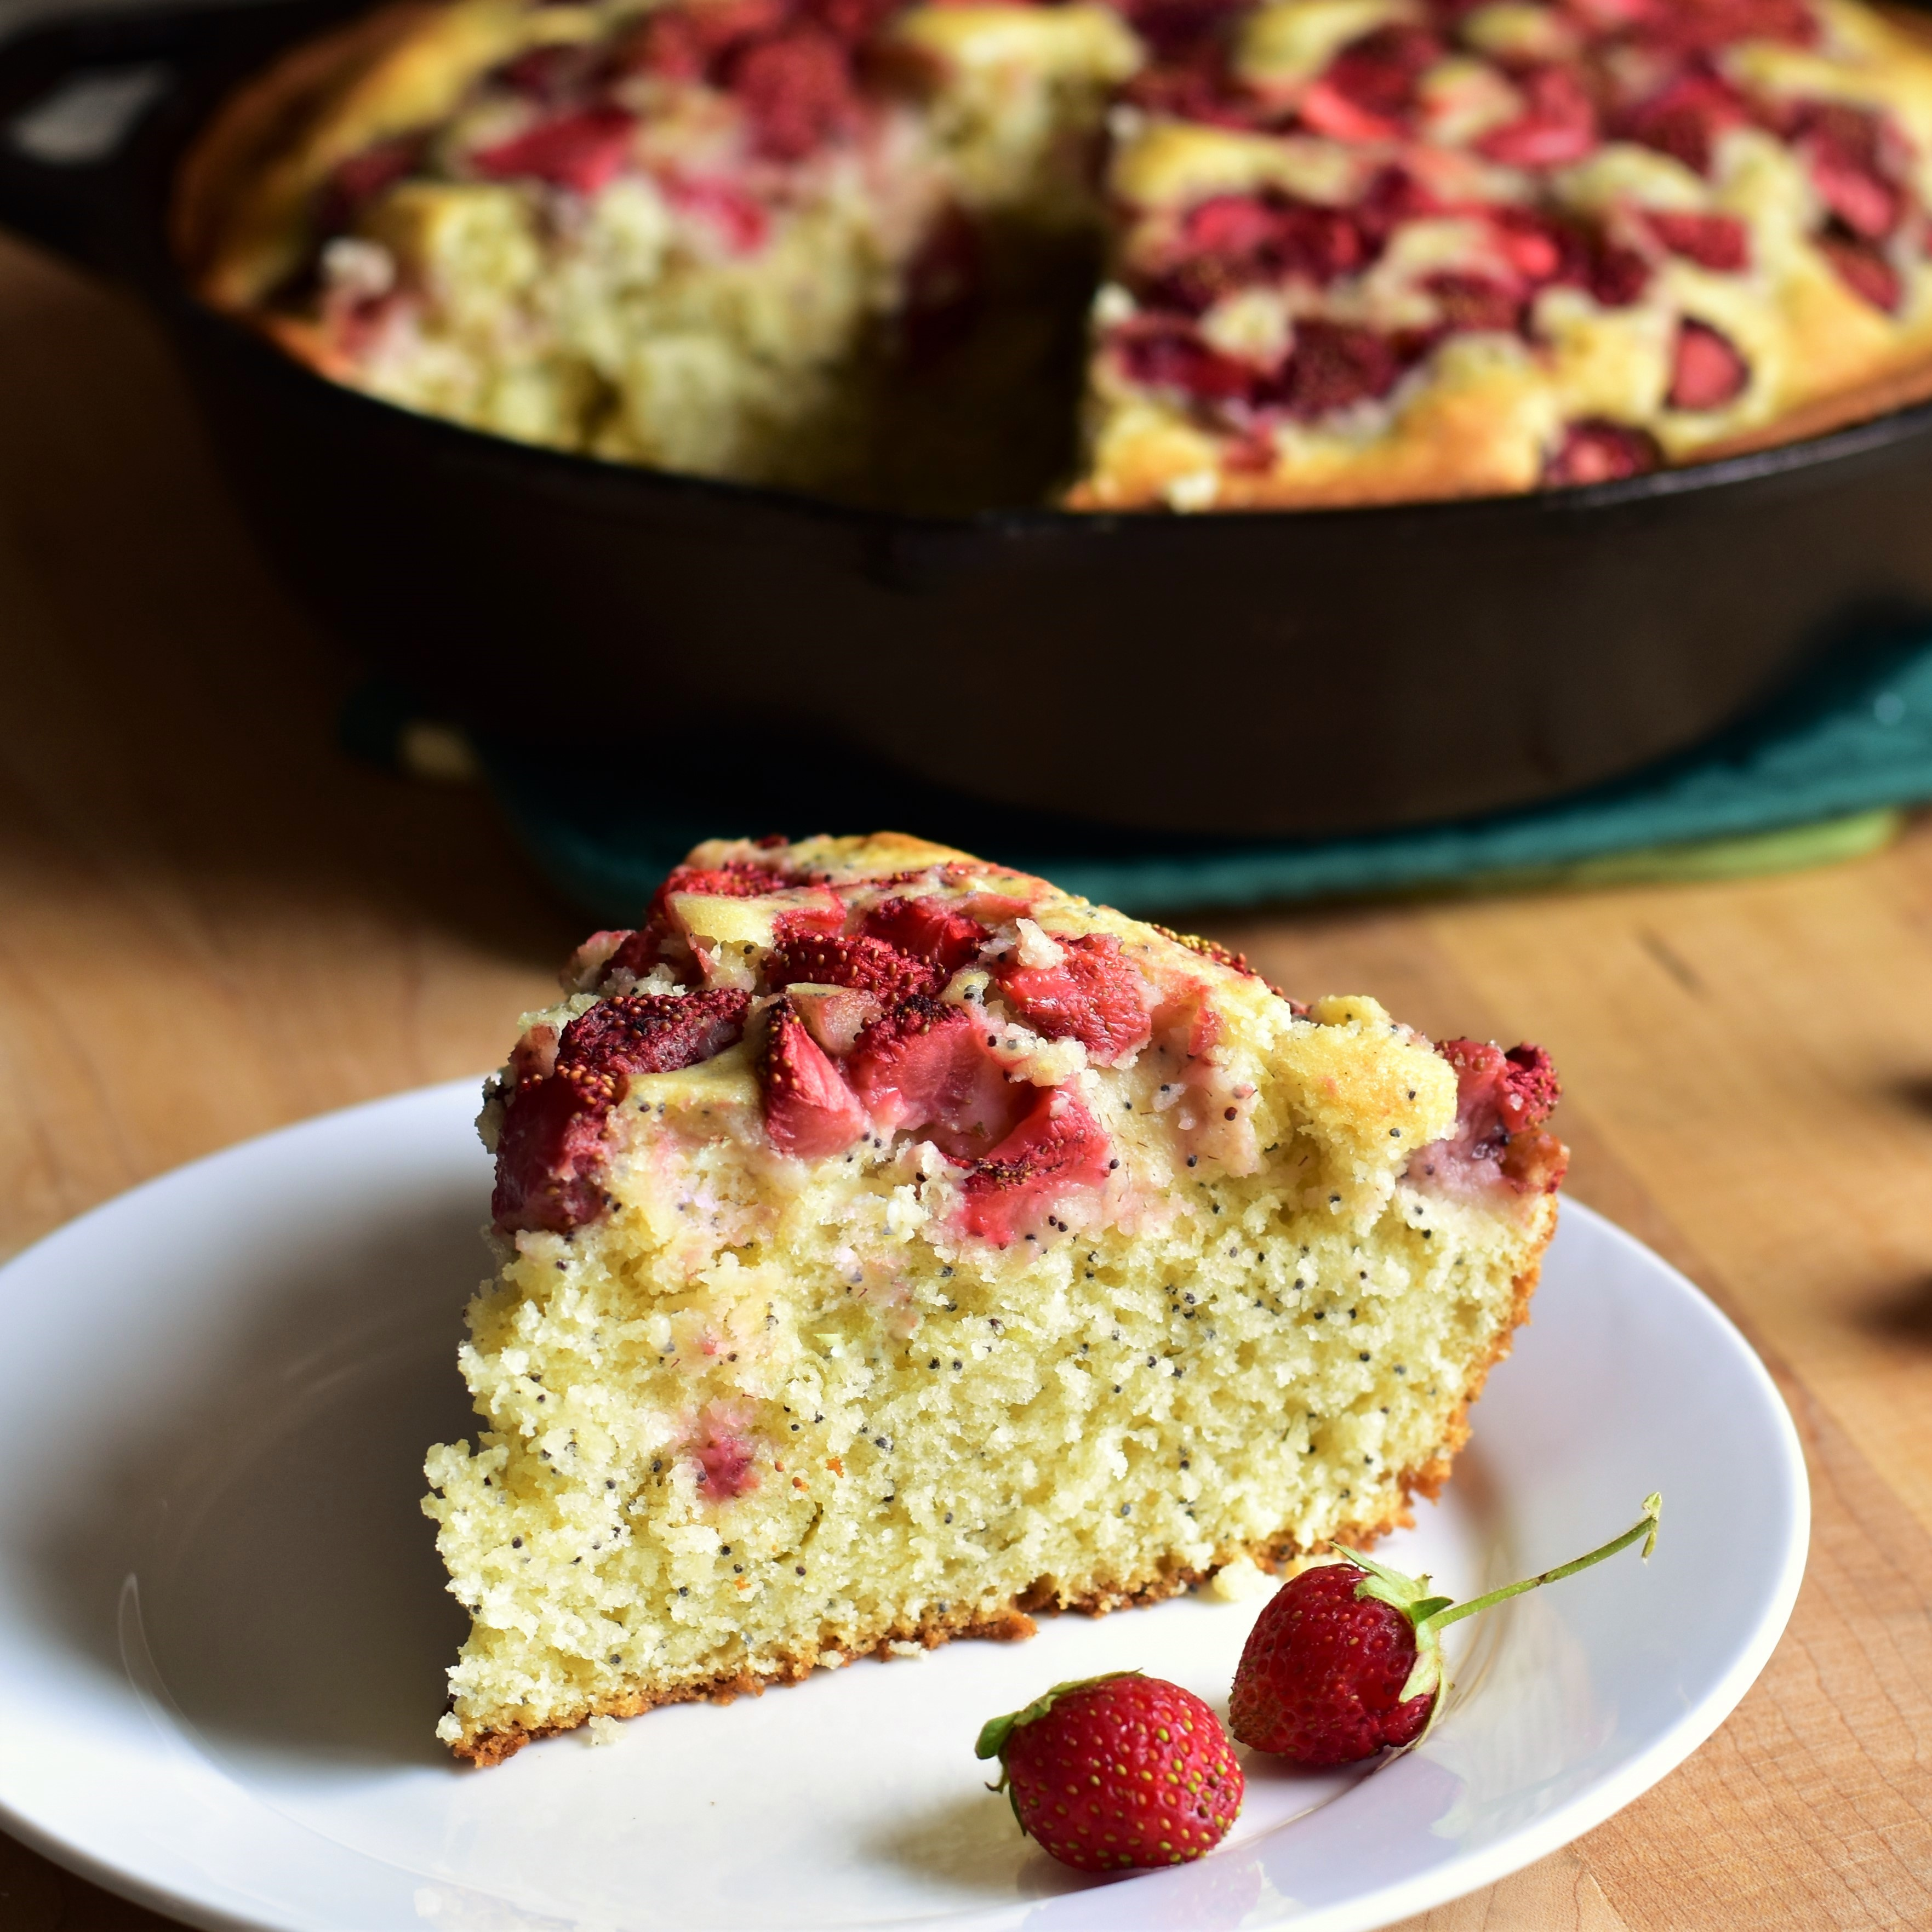 Buttermilk-Poppy Seed Skillet Cake with Strawberries